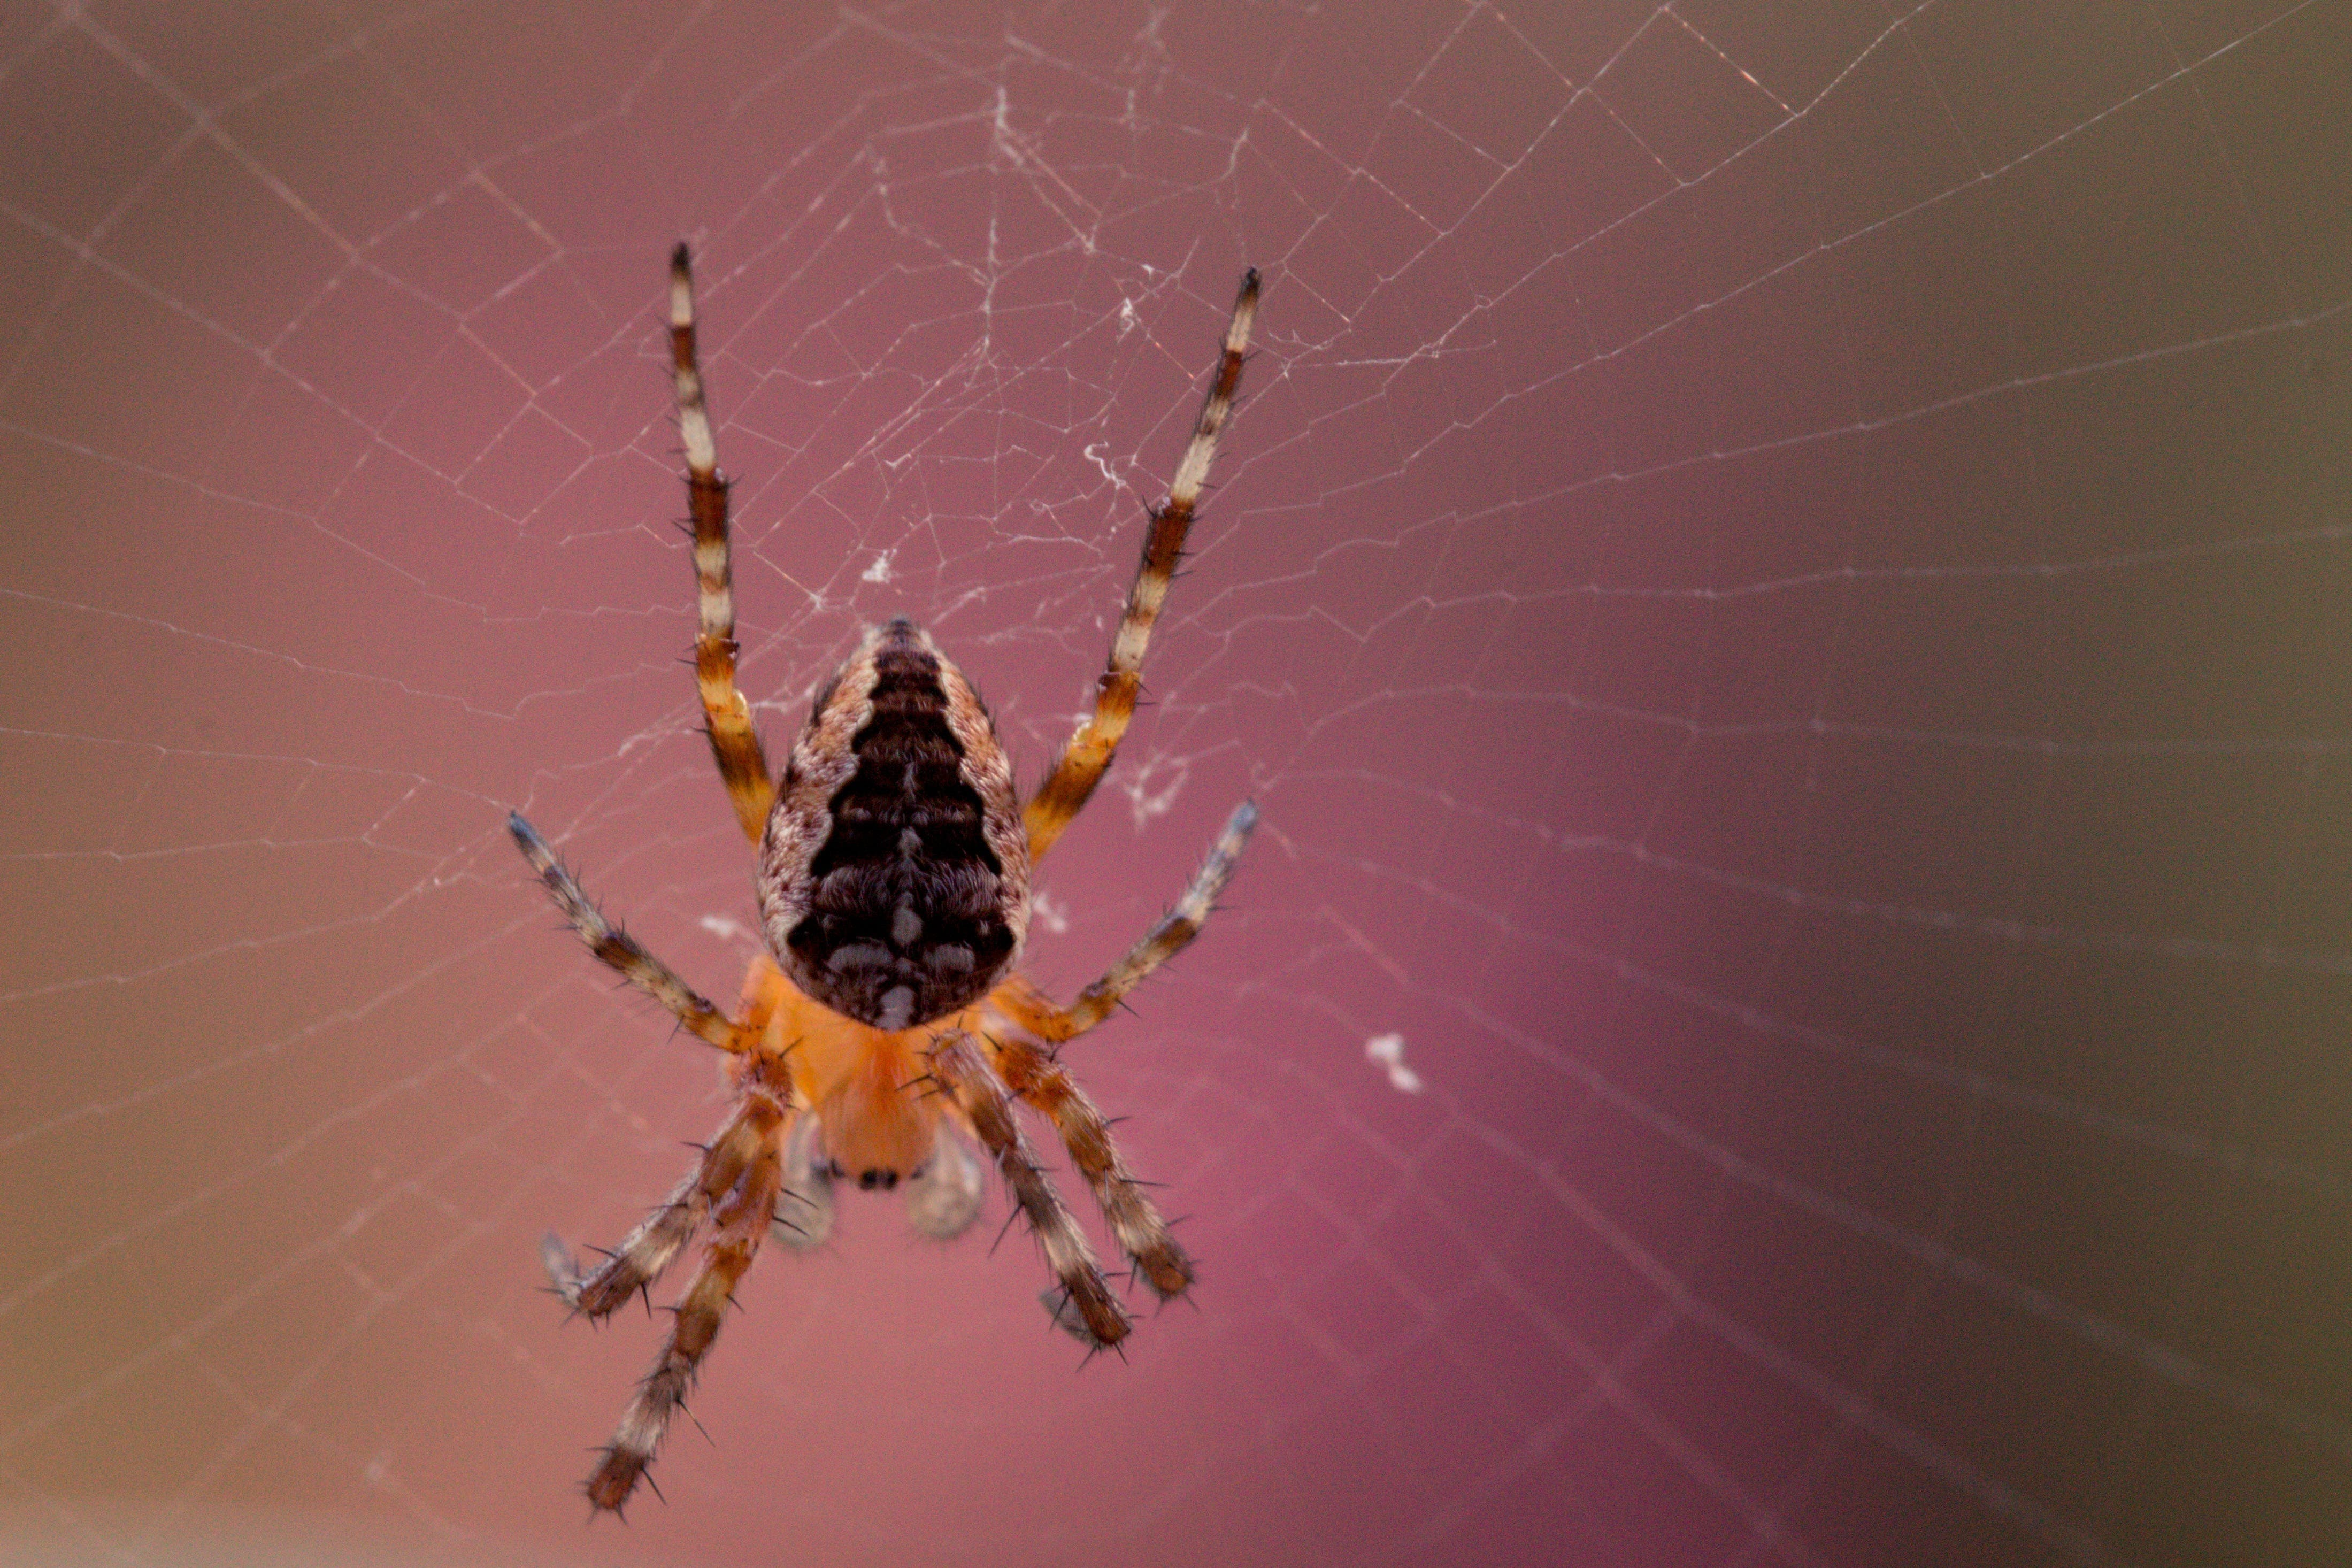 animal, arachnid, blur